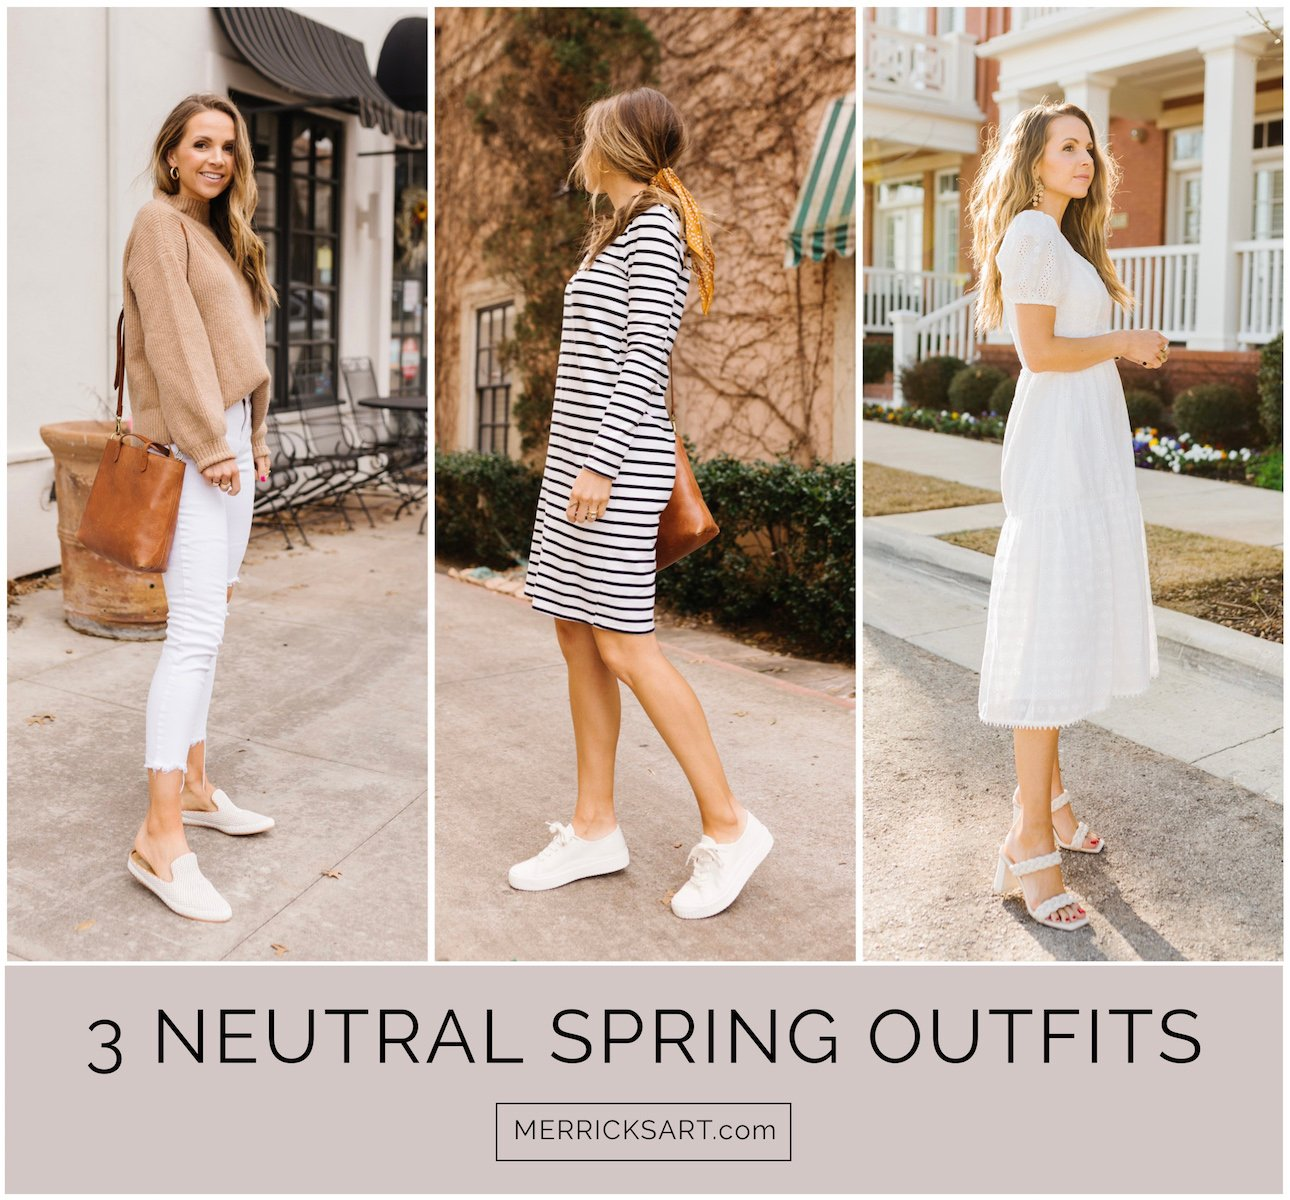 3 neutral spring outfits